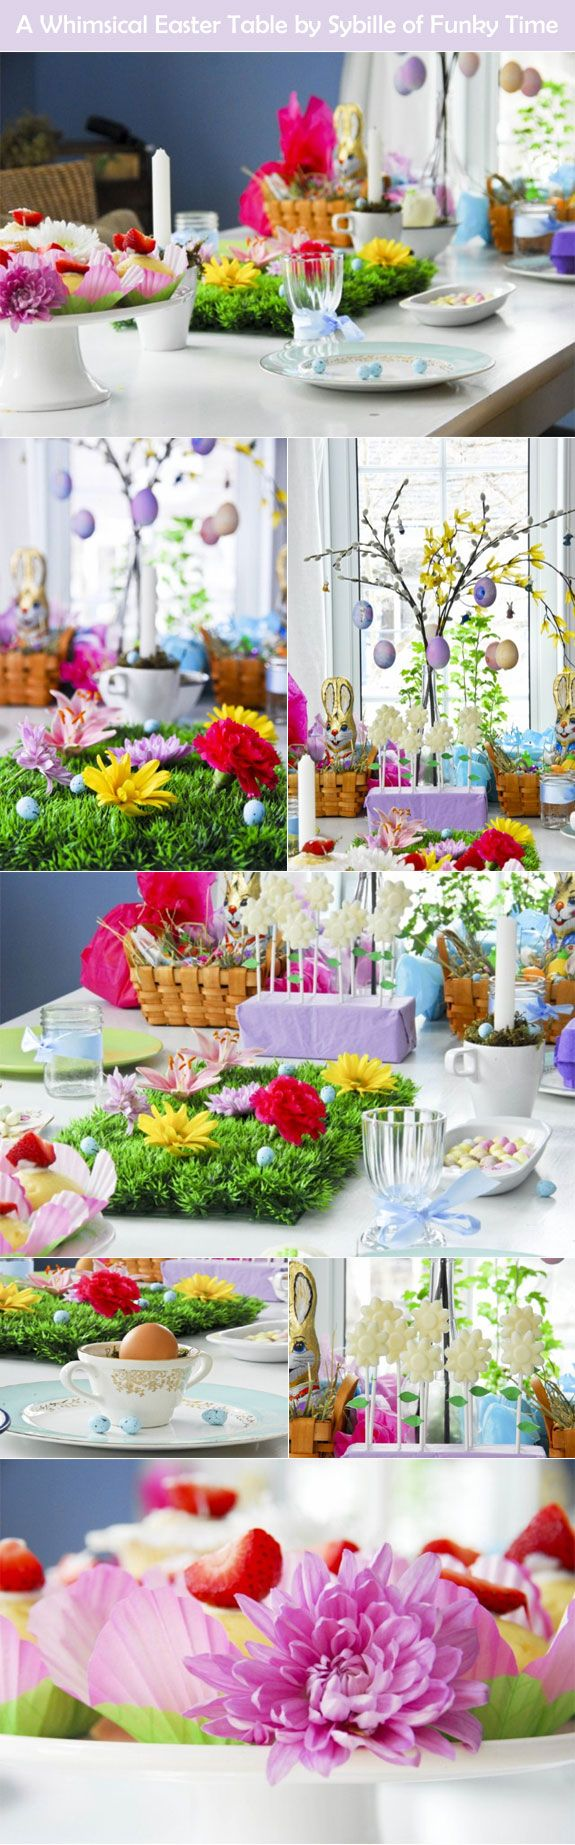 Whimsical Details of a Lovely Easter Table